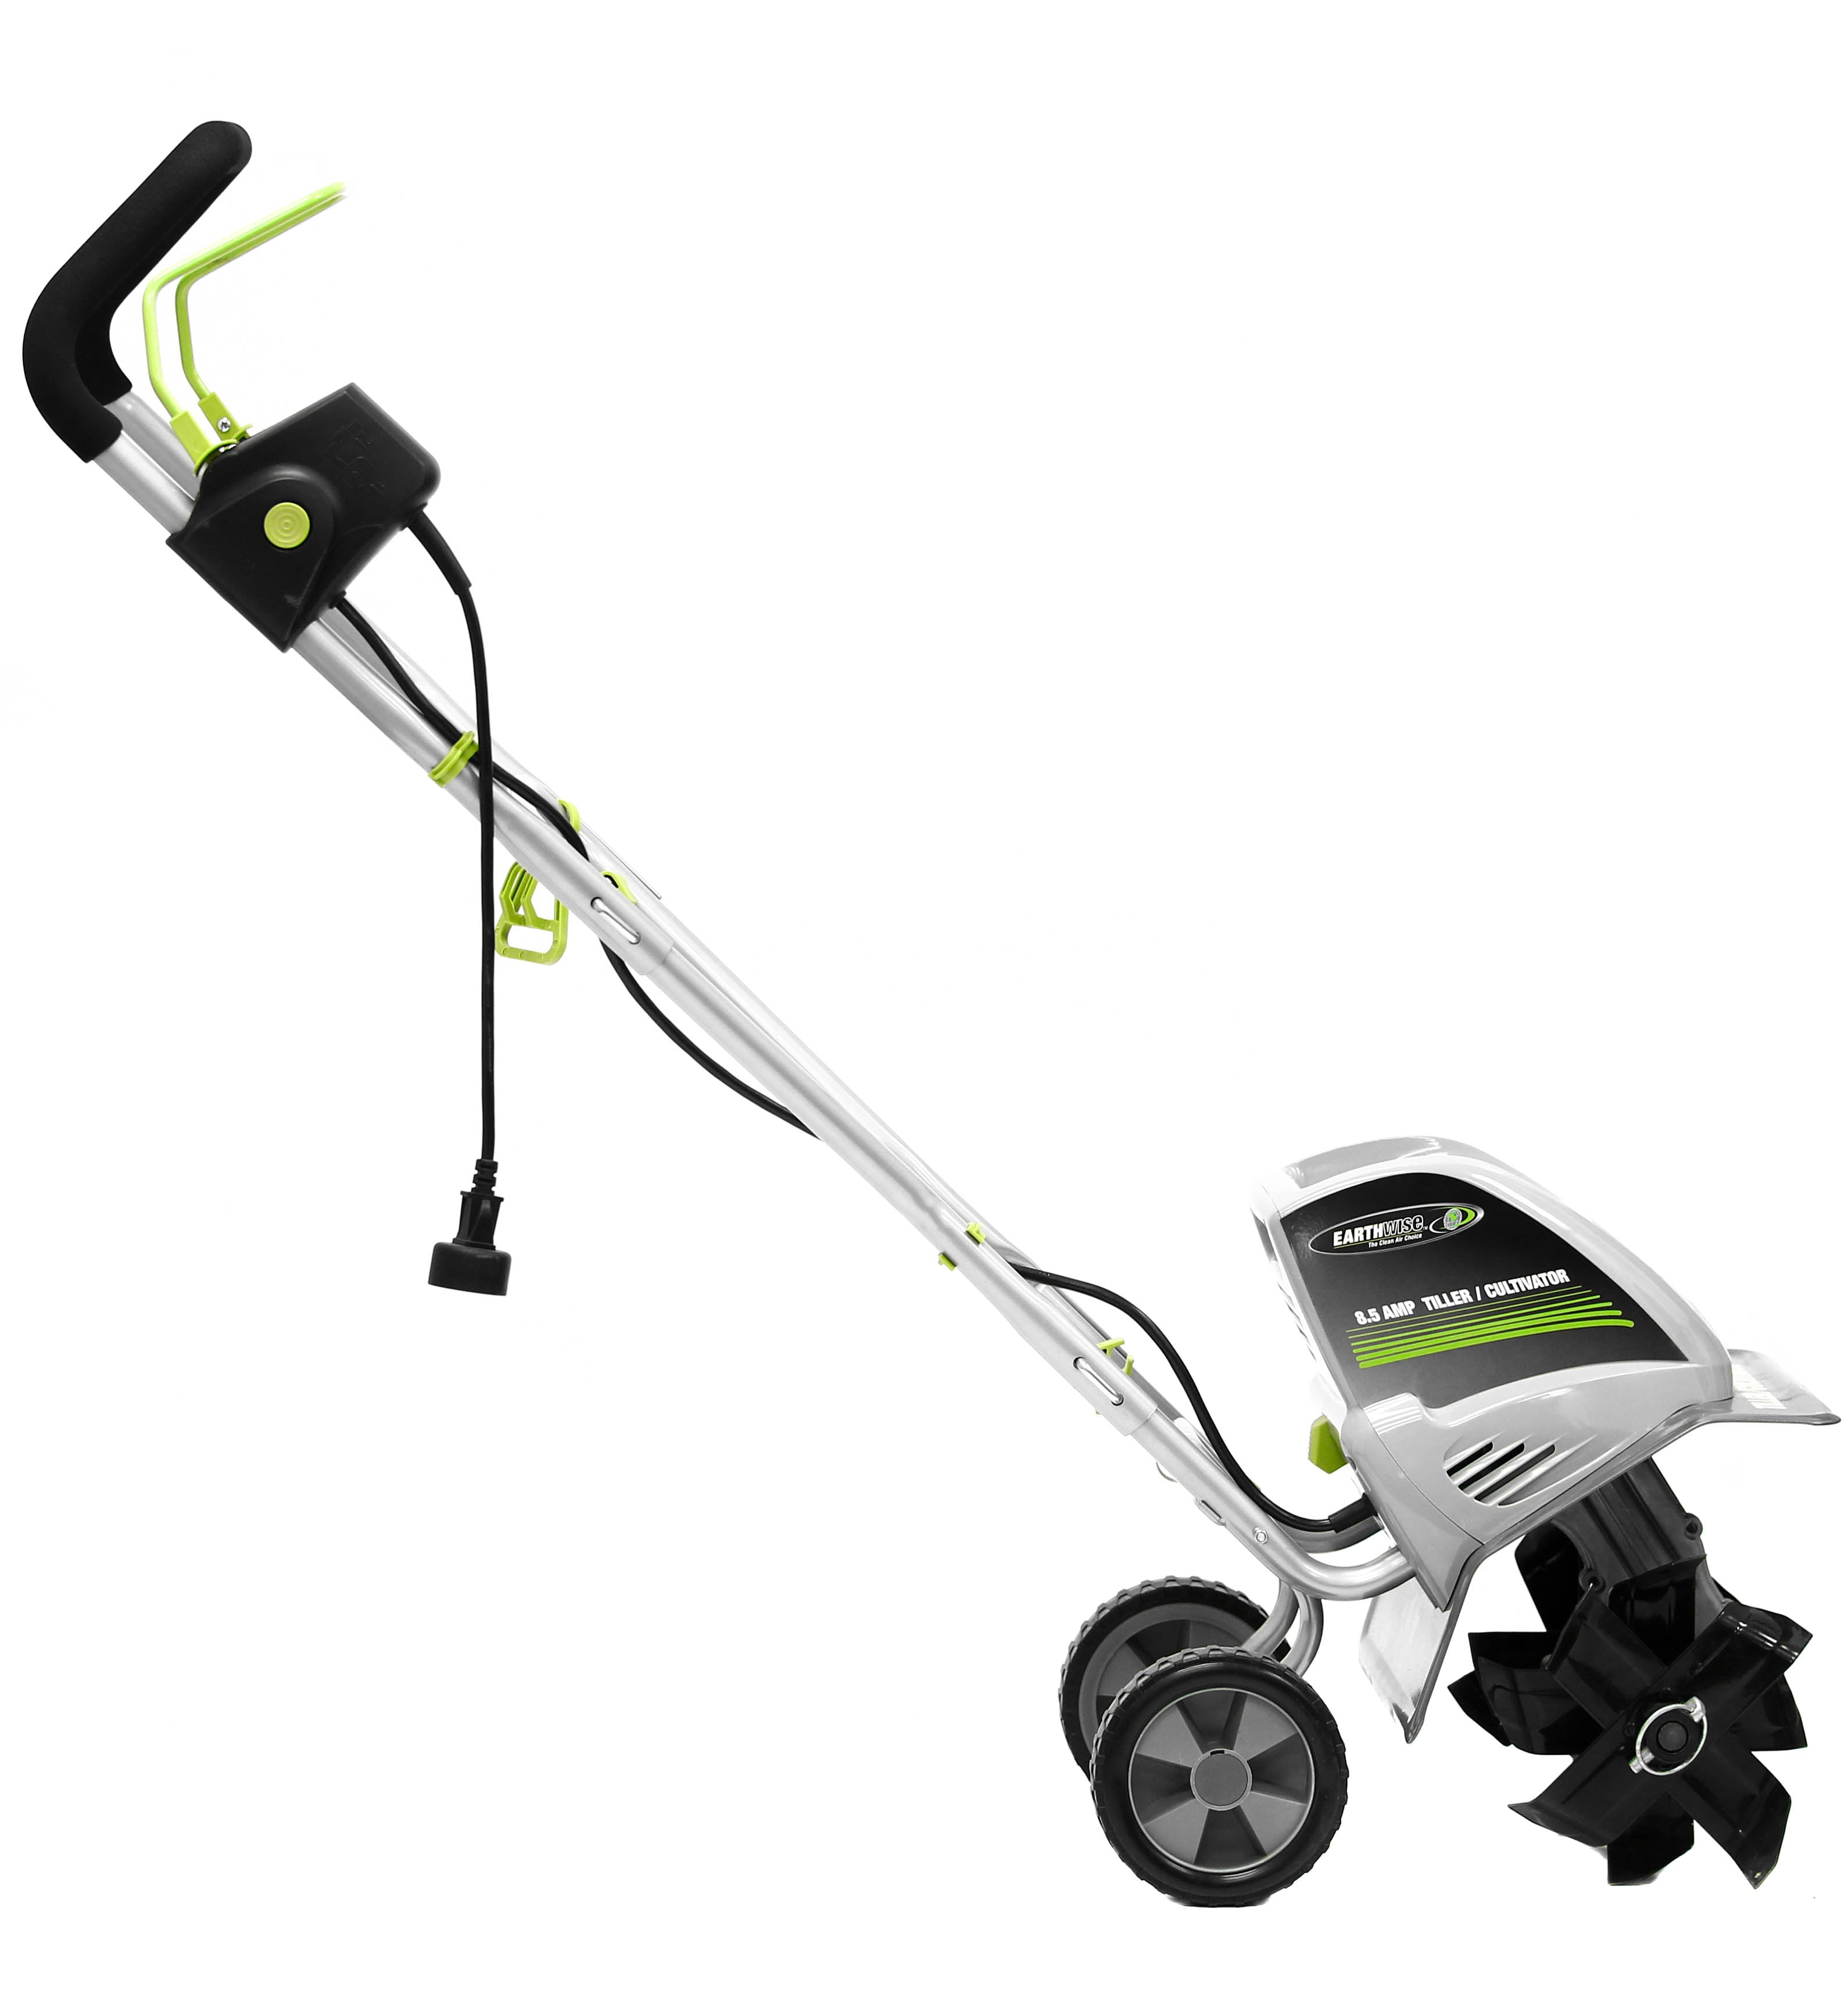 "Earthwise Power Tools by ALM 11"" 8.5-Amp 120V Corded Tiller/Cultivator"